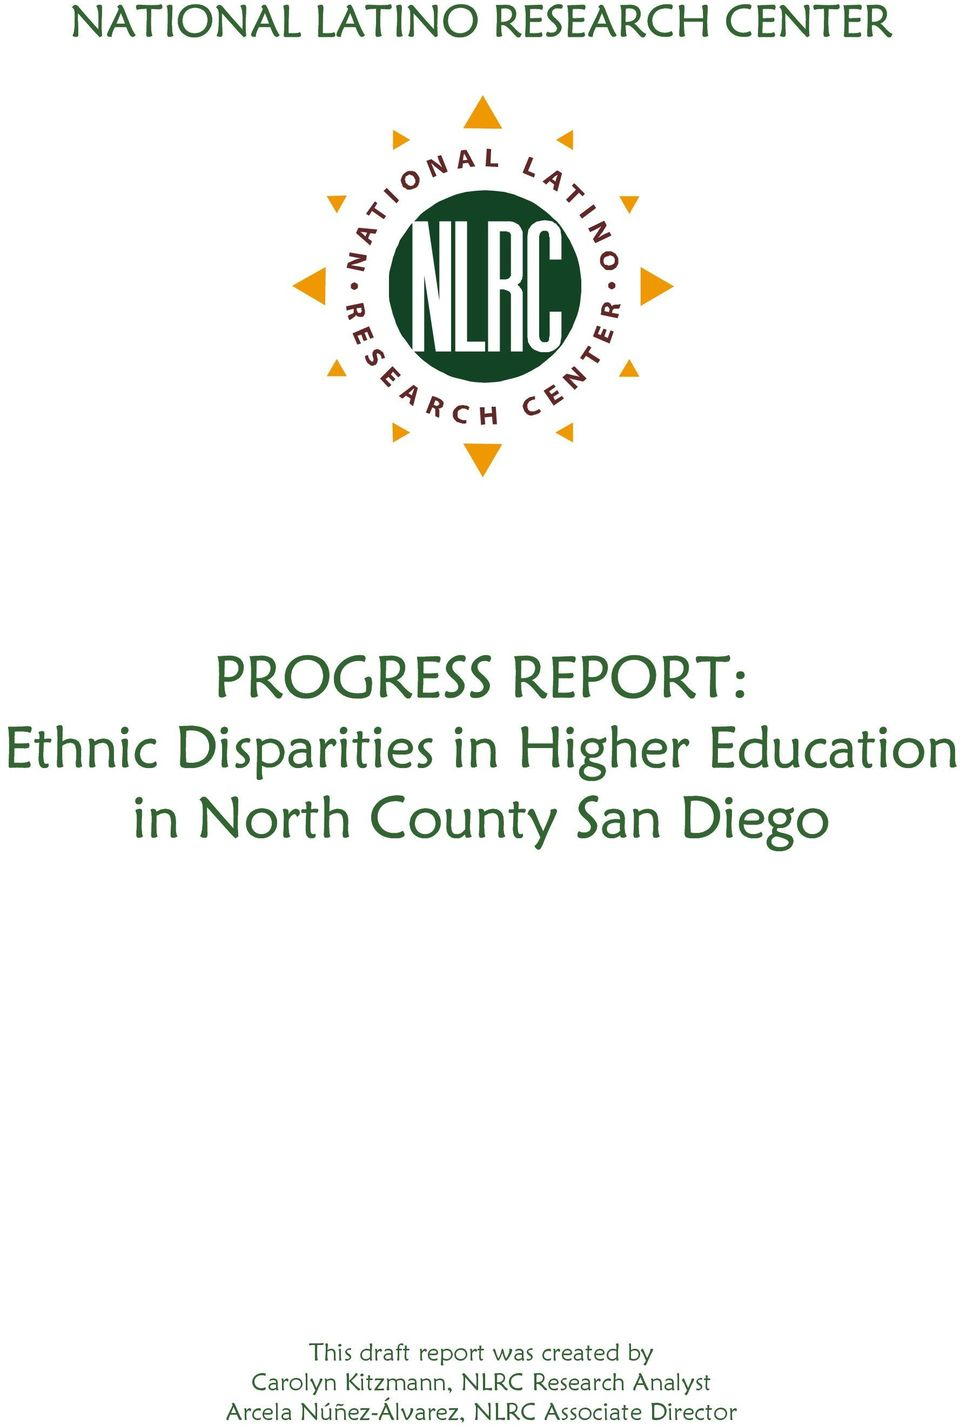 This draft report was created by Carolyn Kitzmann, NLRC